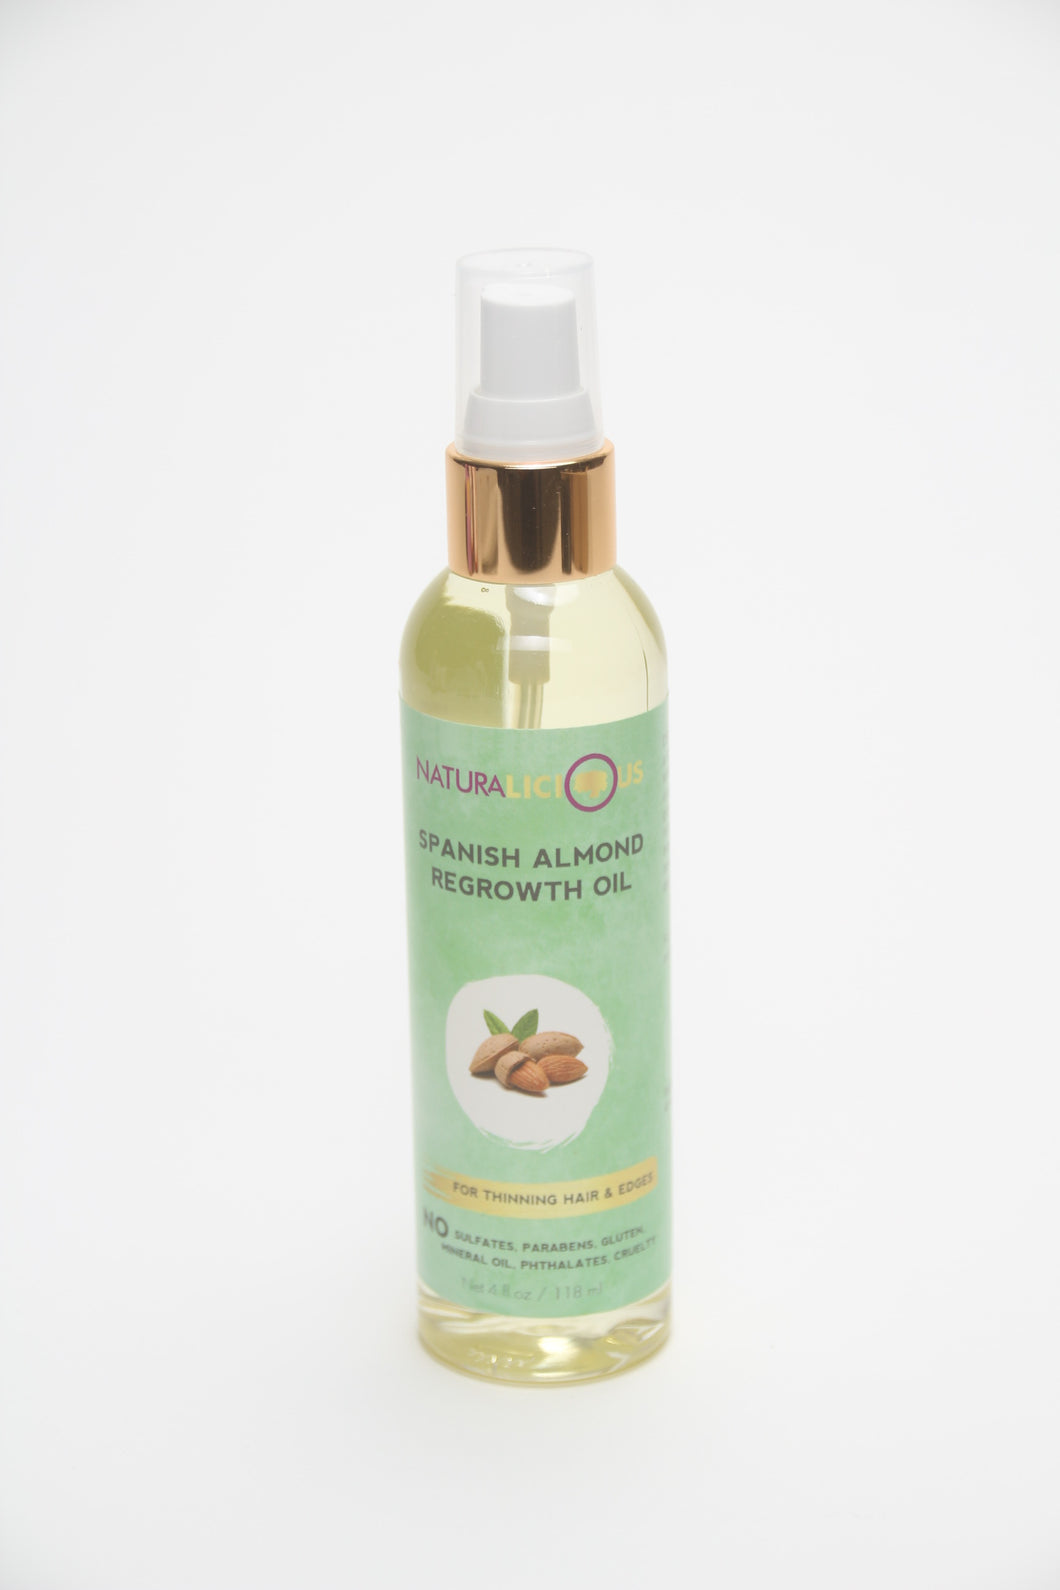 Naturalicious Spanish Almond Regrowth Oil Don't Break the Comb